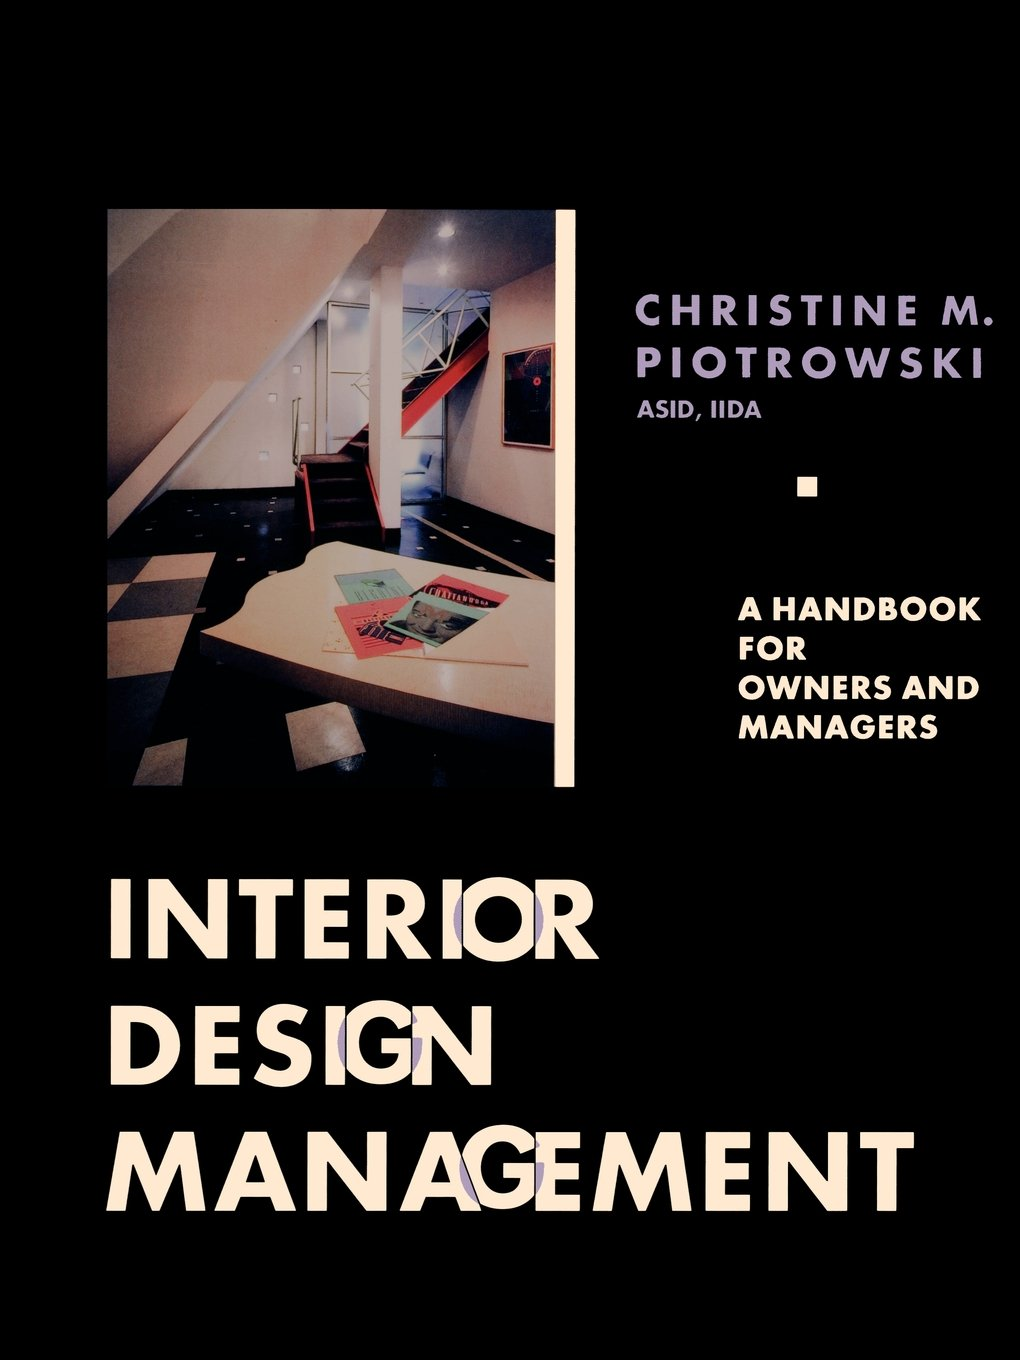 Interior Design Management A Handbook For Owners And Managers Christine M Piotrowski 9780471284314 Amazon Books